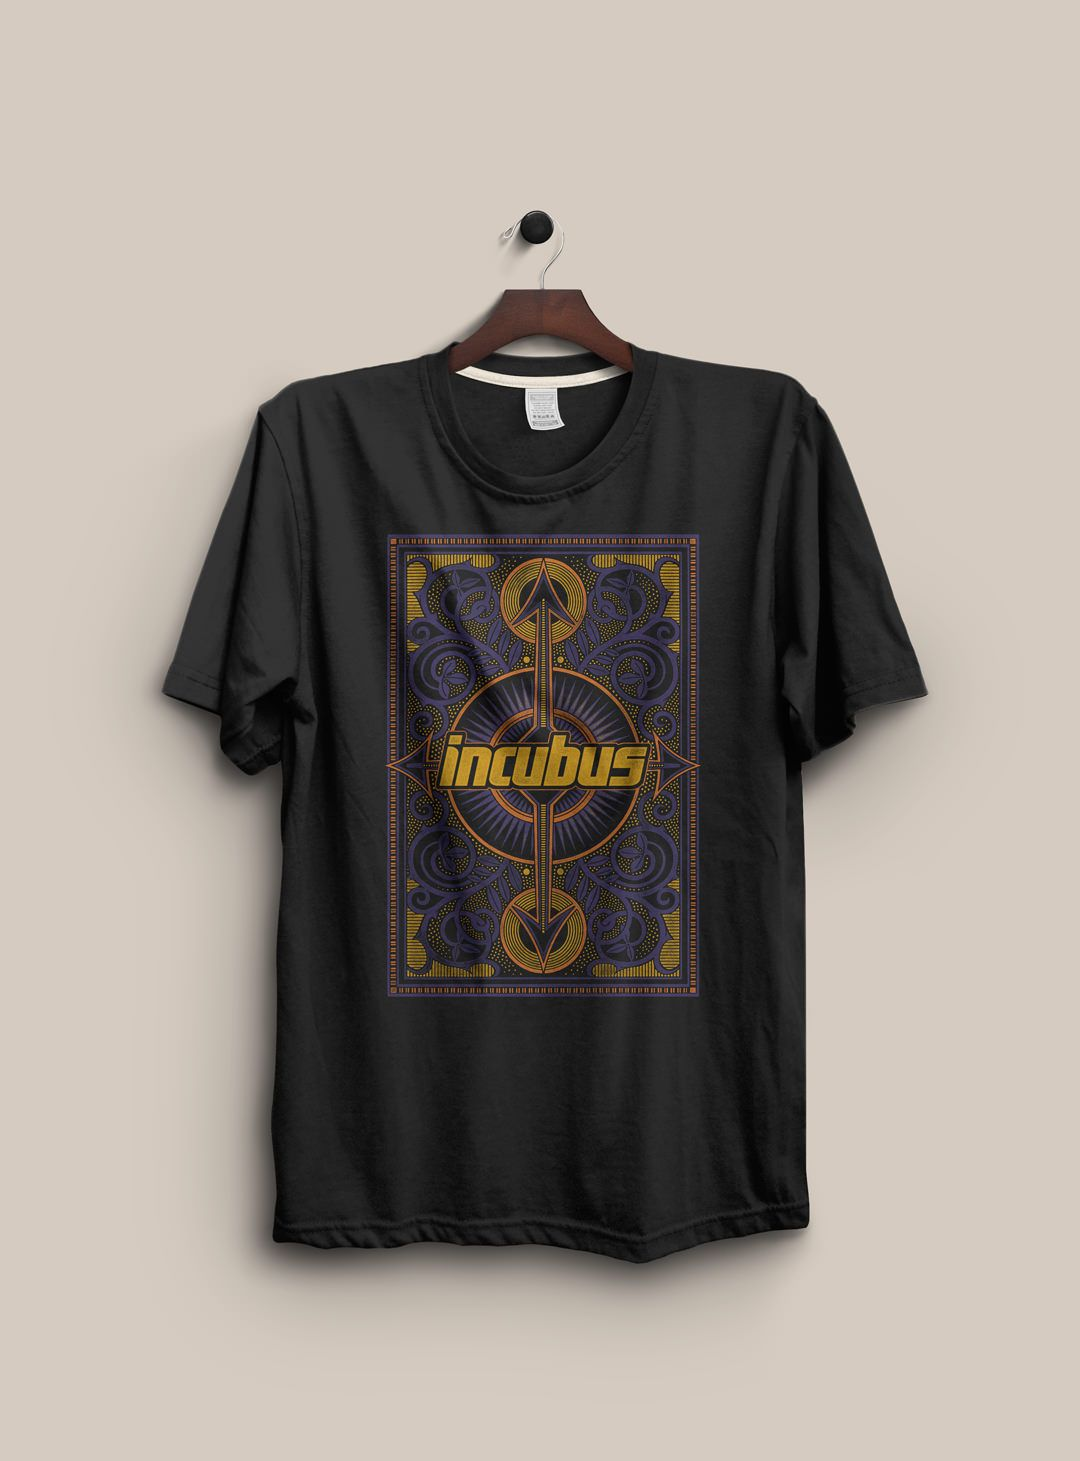 dbabdc3a Alternative rock artists Incubus t-shirts, merch, & apparel graphics for  the bands 2011 national tour and online store. Designed by Jeff Rigsby.